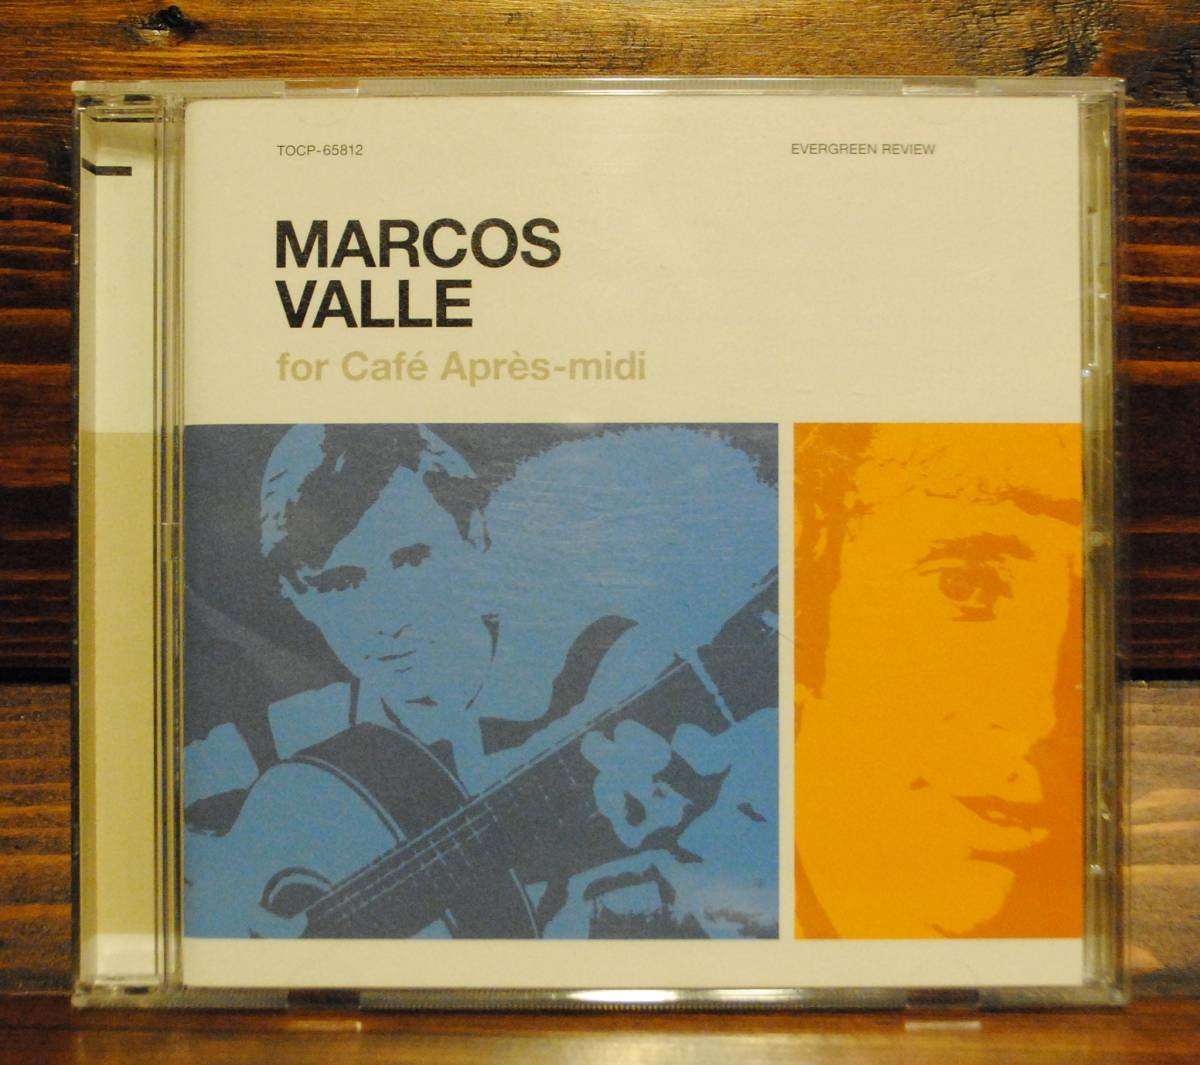 ●CD● MARCOS VALLE for Cafe Apres-midi / 2001年 国内盤 / 橋本徹 / Free soul / サバービア / カフェアプレミディ / 送料_画像1